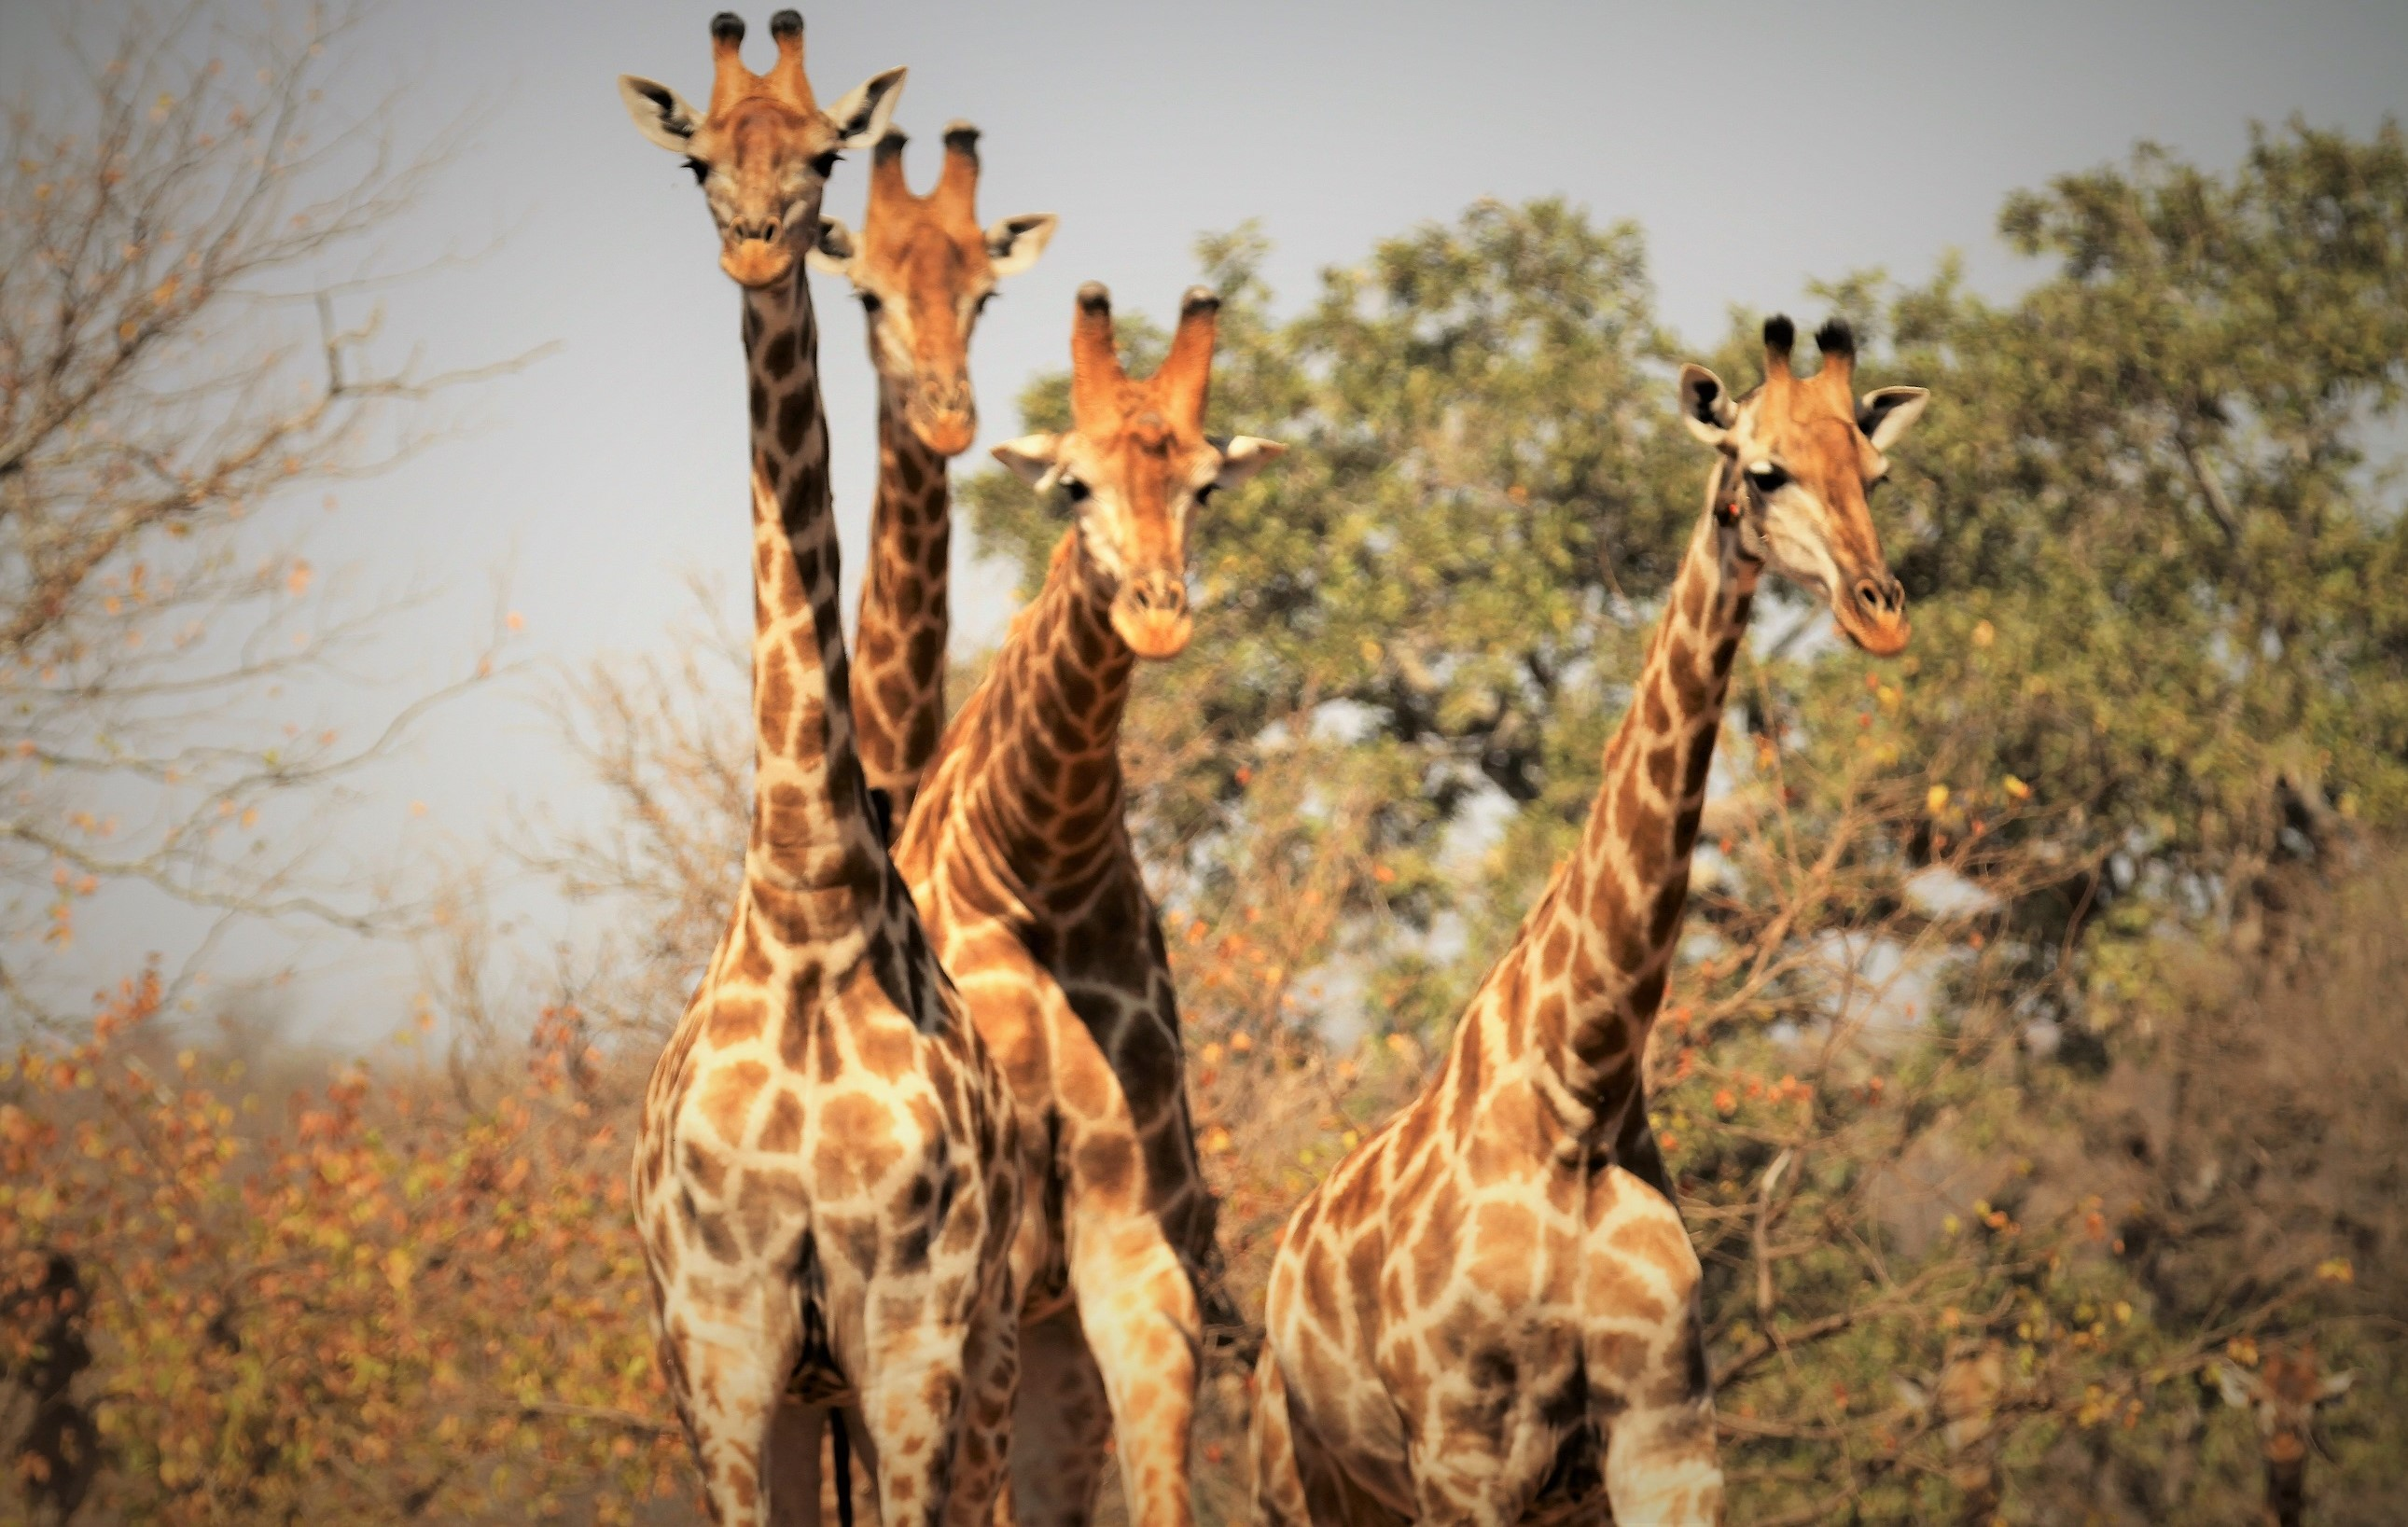 The giraffe and its long neck